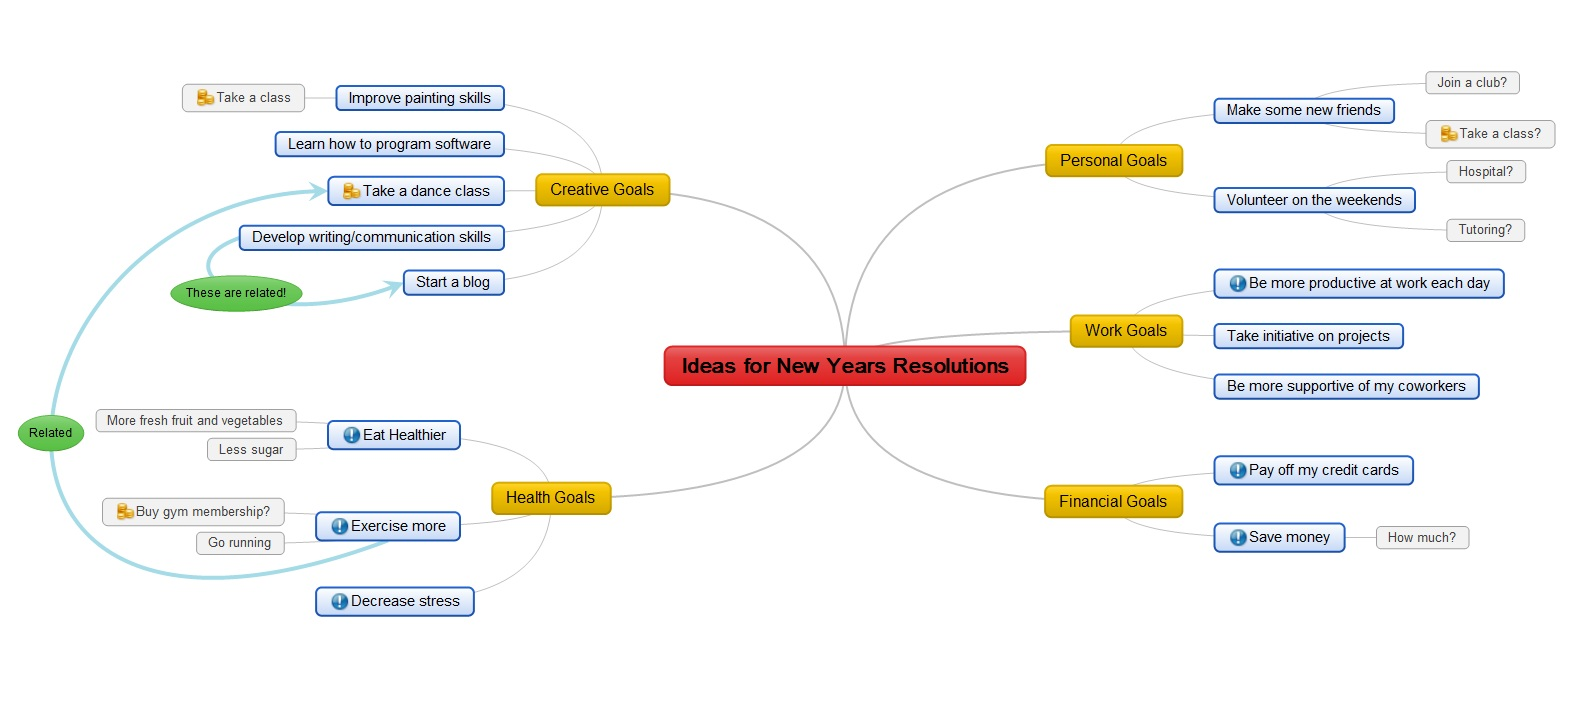 brainstorming exercises for creative writing Brainstorming toolkit mindtoolscom  creative ideas  brainstorming is a popular tool that helps you generate creative solutions to a warm-up exercise or.